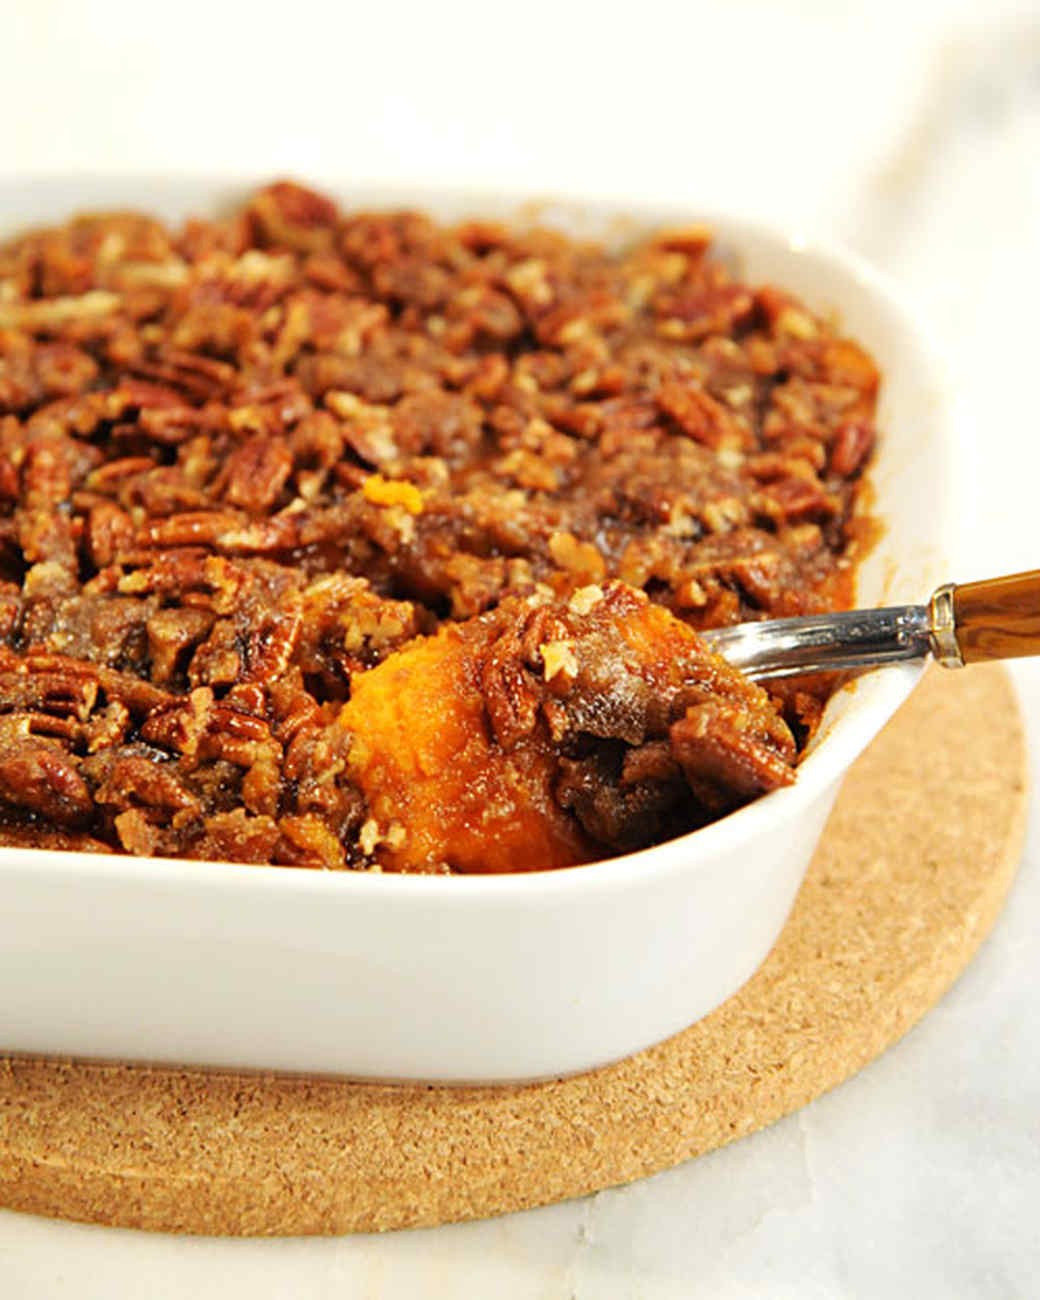 Amanda Hesser's Sweet Potato Casserole Recipe & Video